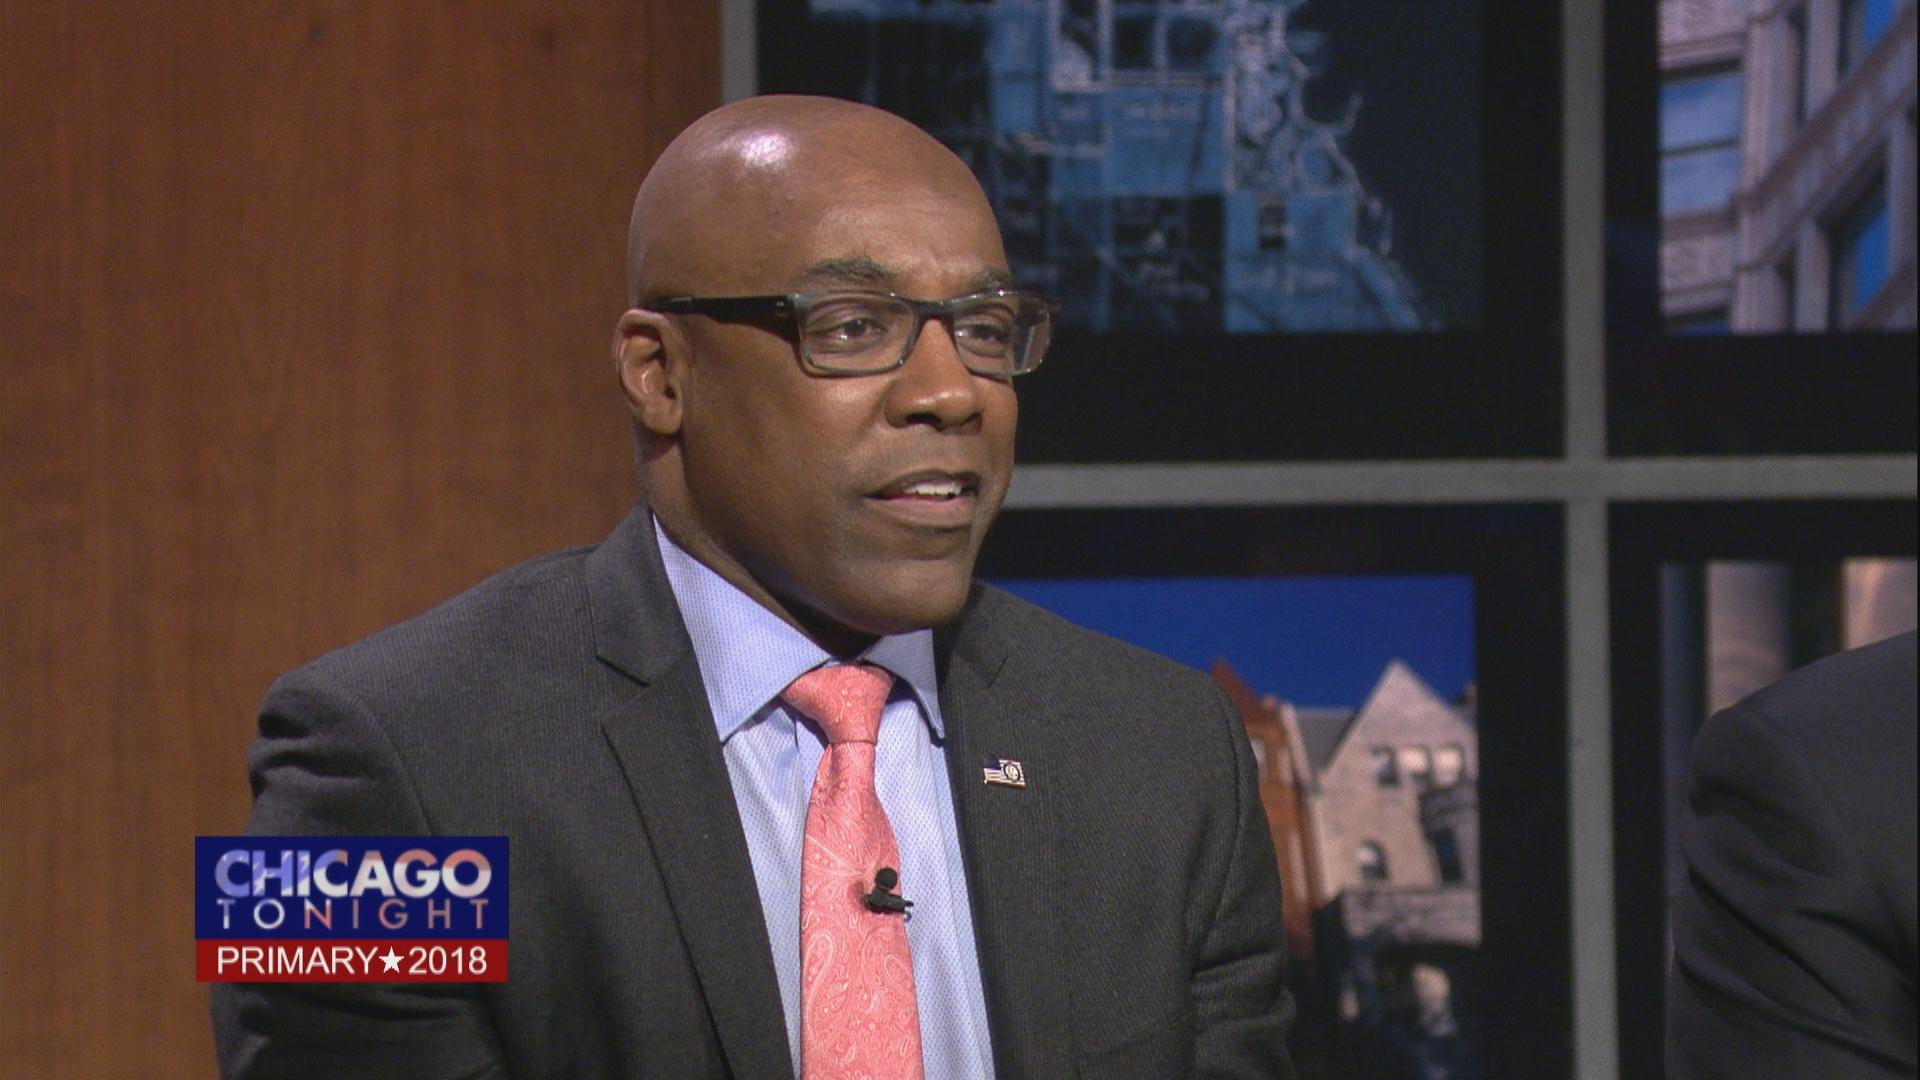 State Sen. Kwame Raoul participates in a Chicago Tonight candidate forum March 12, 2018.